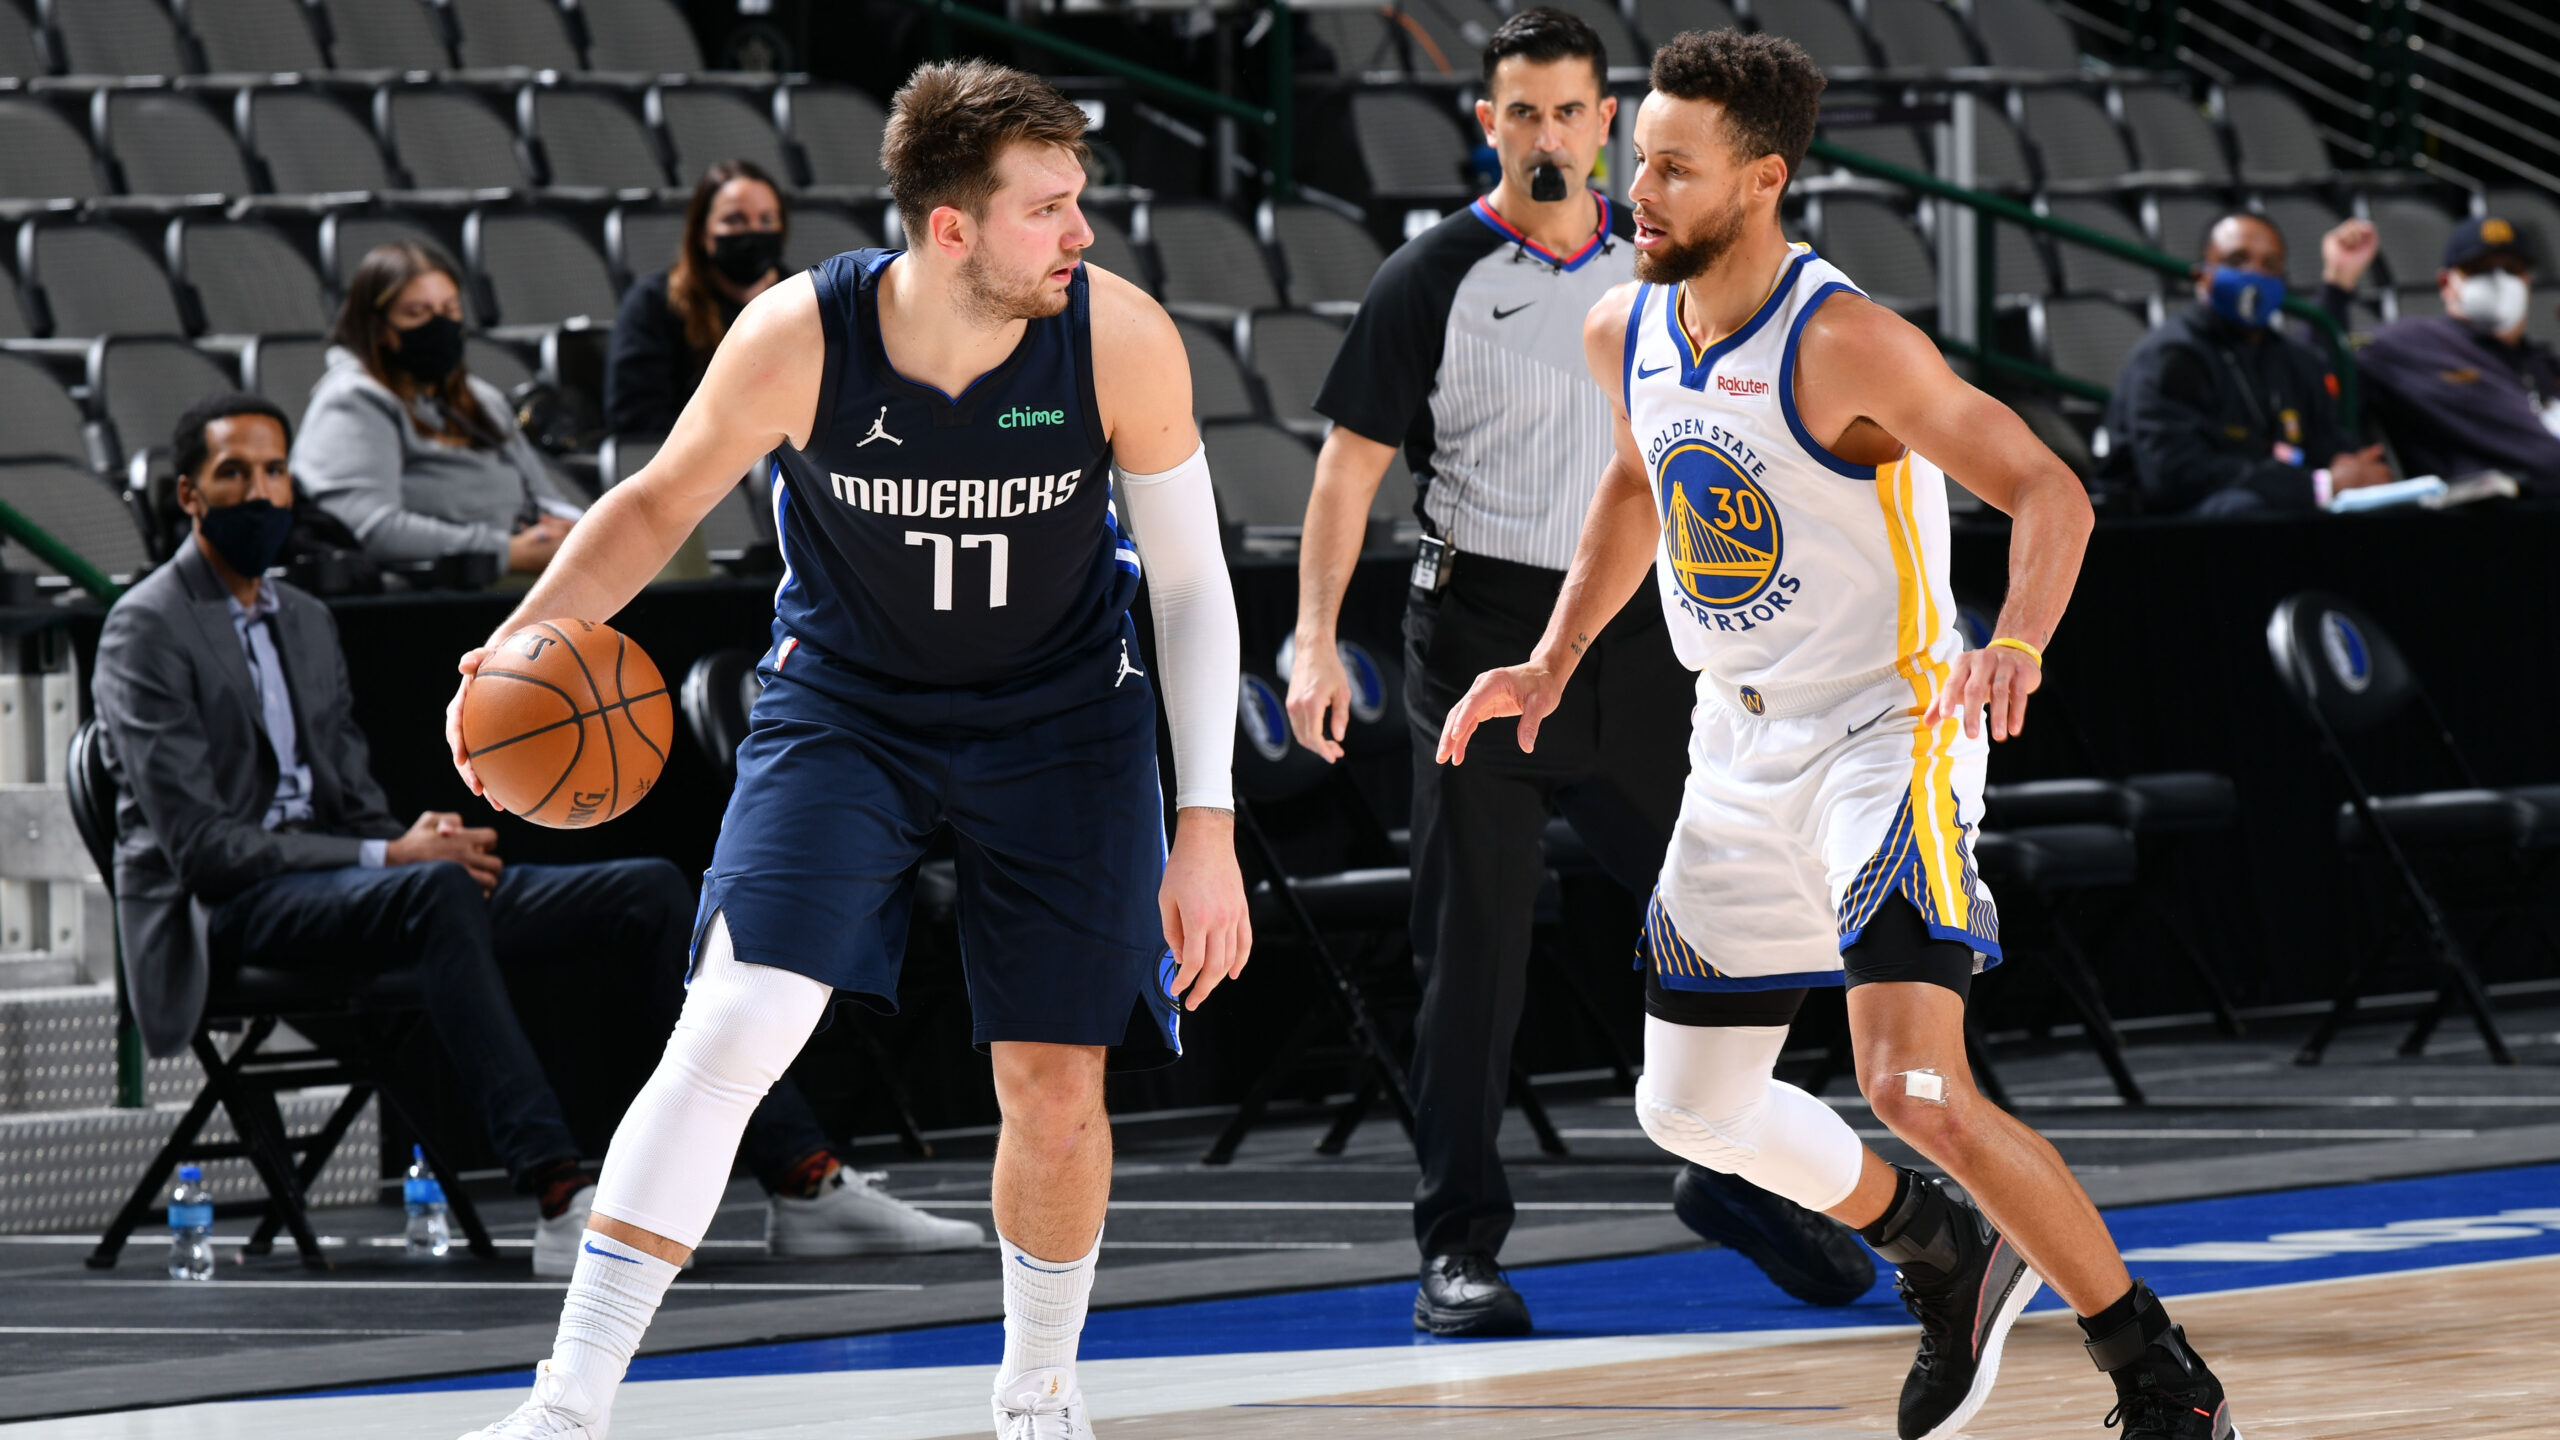 2021-22 NBA fantasy basketball: Top 150 player rankings with notes